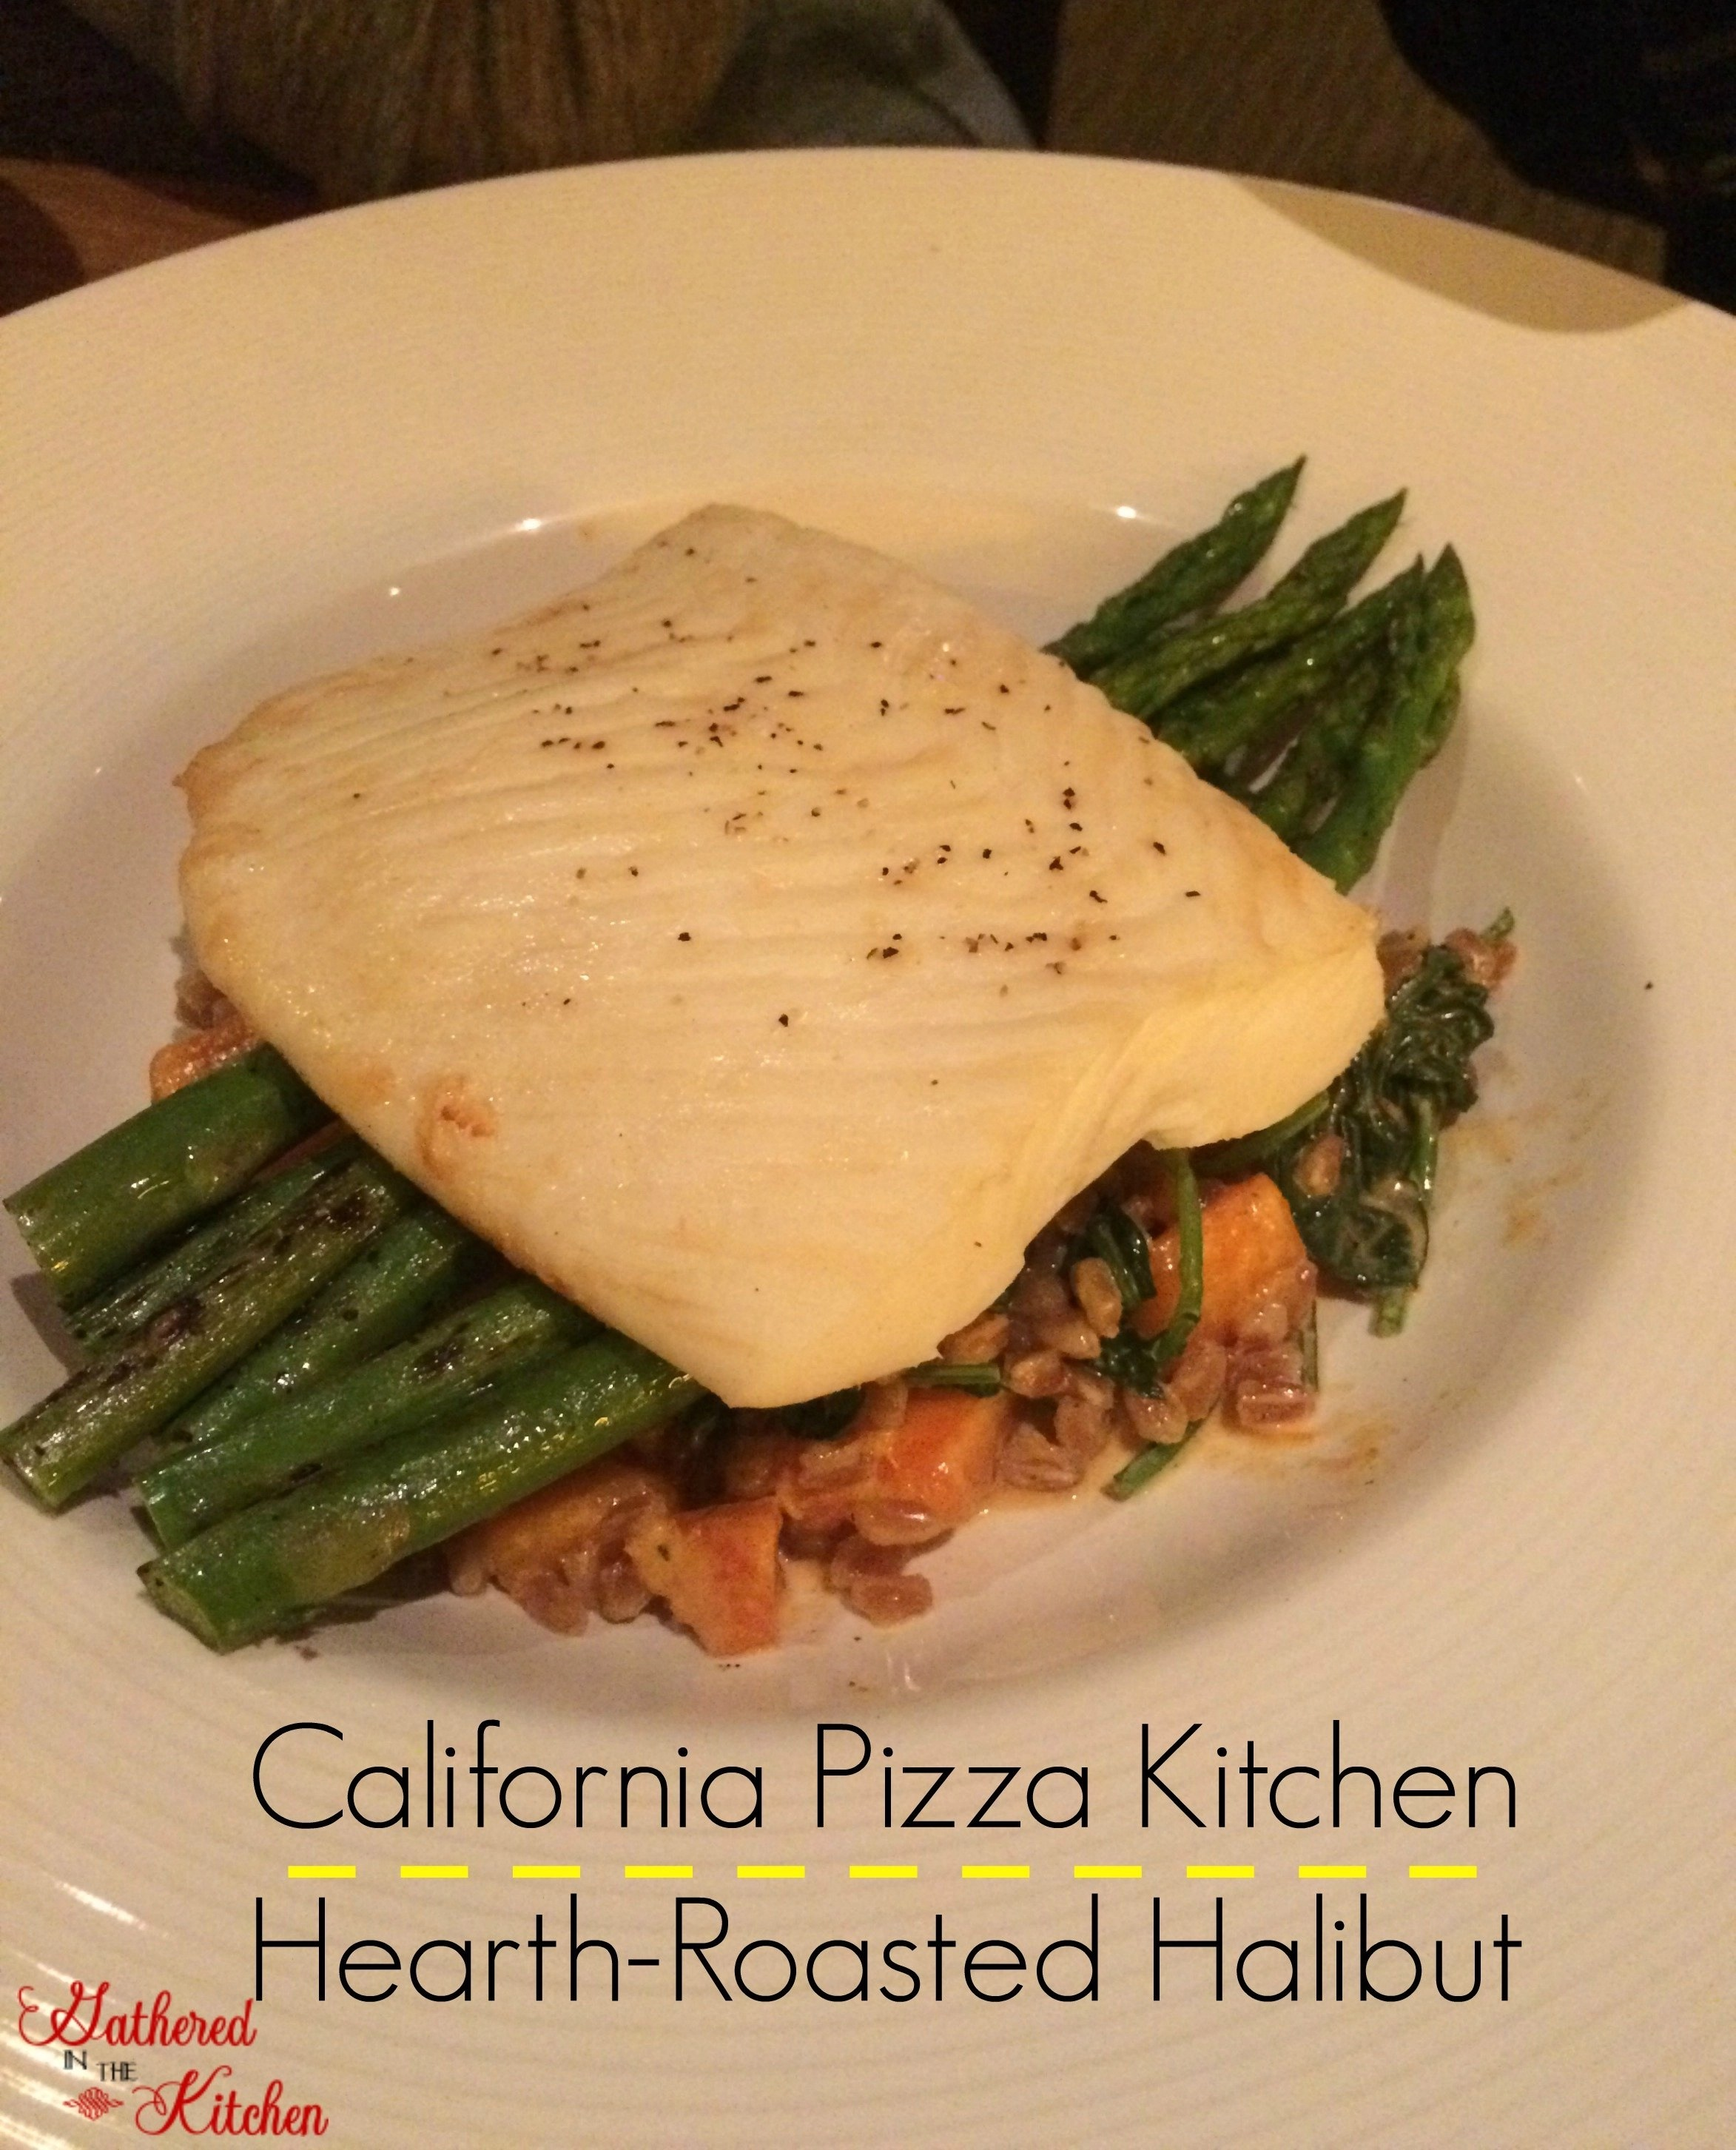 california pizza kitchen hearth-roasted halibut